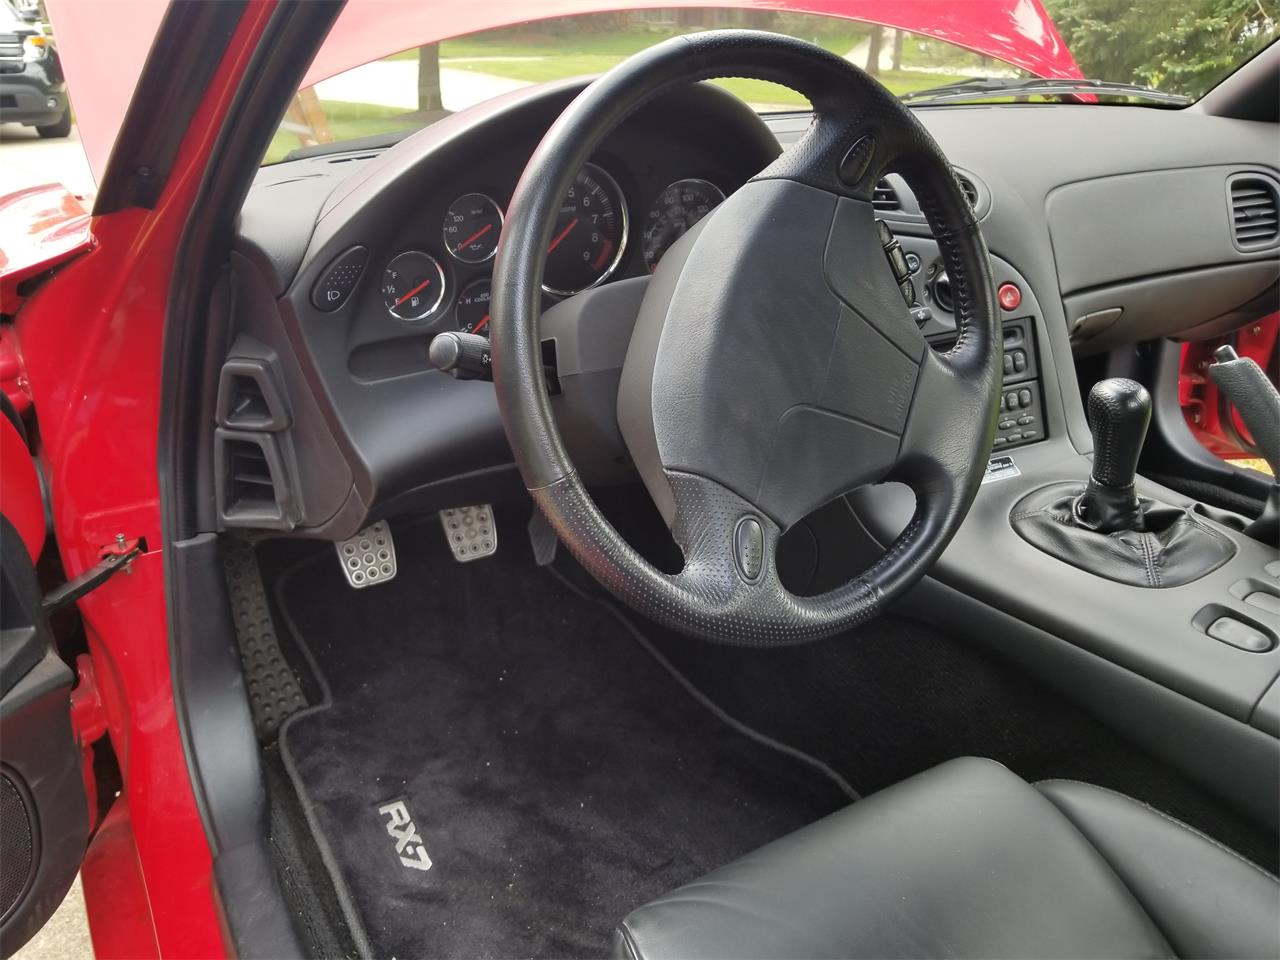 Large Picture of 1993 RX-7 located in Akron Ohio - $54,000.00 - NICV